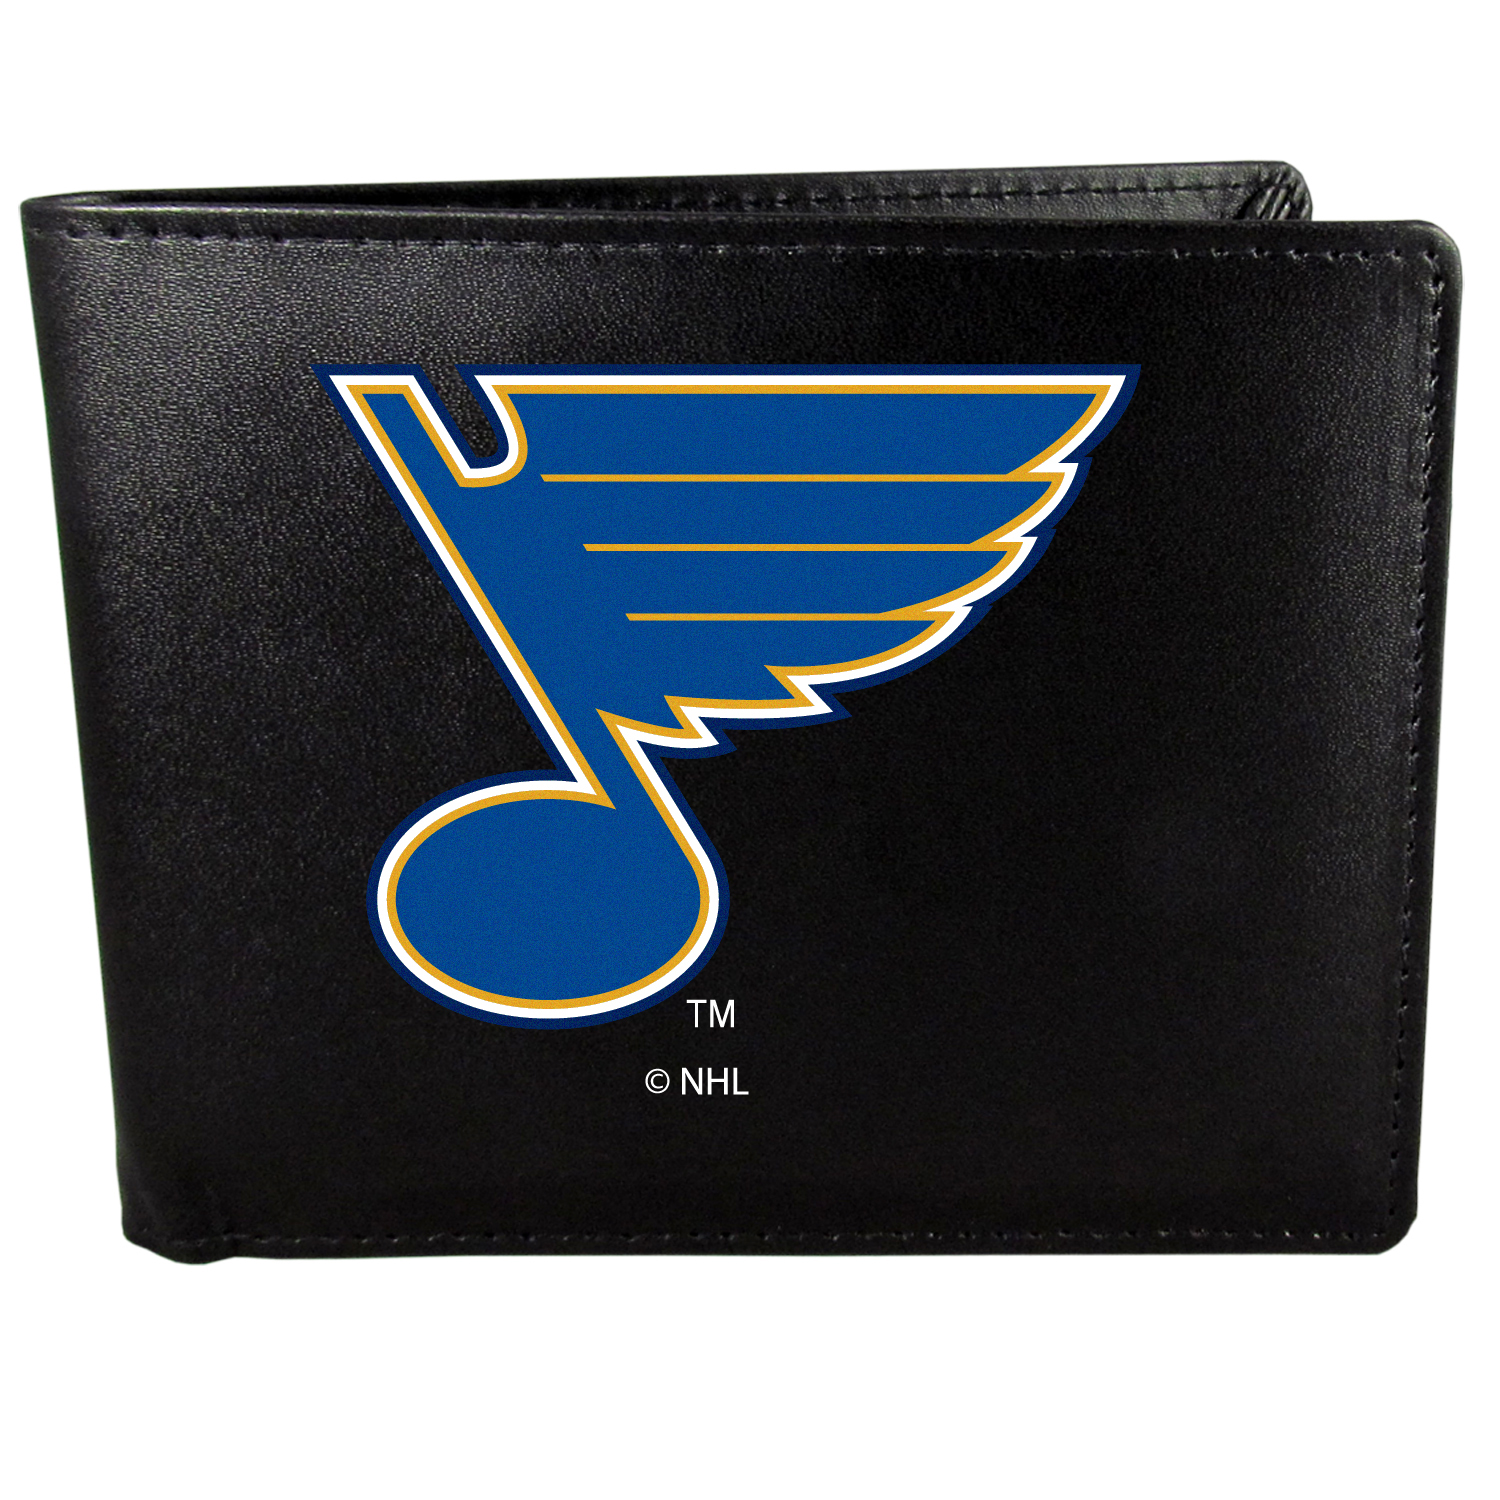 St. Louis Blues Bi-fold Wallet Large Logo - Sports fans do not have to sacrifice style with this classic bi-fold wallet that sports the St. Louis Blues?extra large logo. This men's fashion accessory has a leather grain look and expert craftmanship for a quality wallet at a great price. The wallet features inner credit card slots, windowed ID slot and a large billfold pocket. The front of the wallet features a printed team logo.